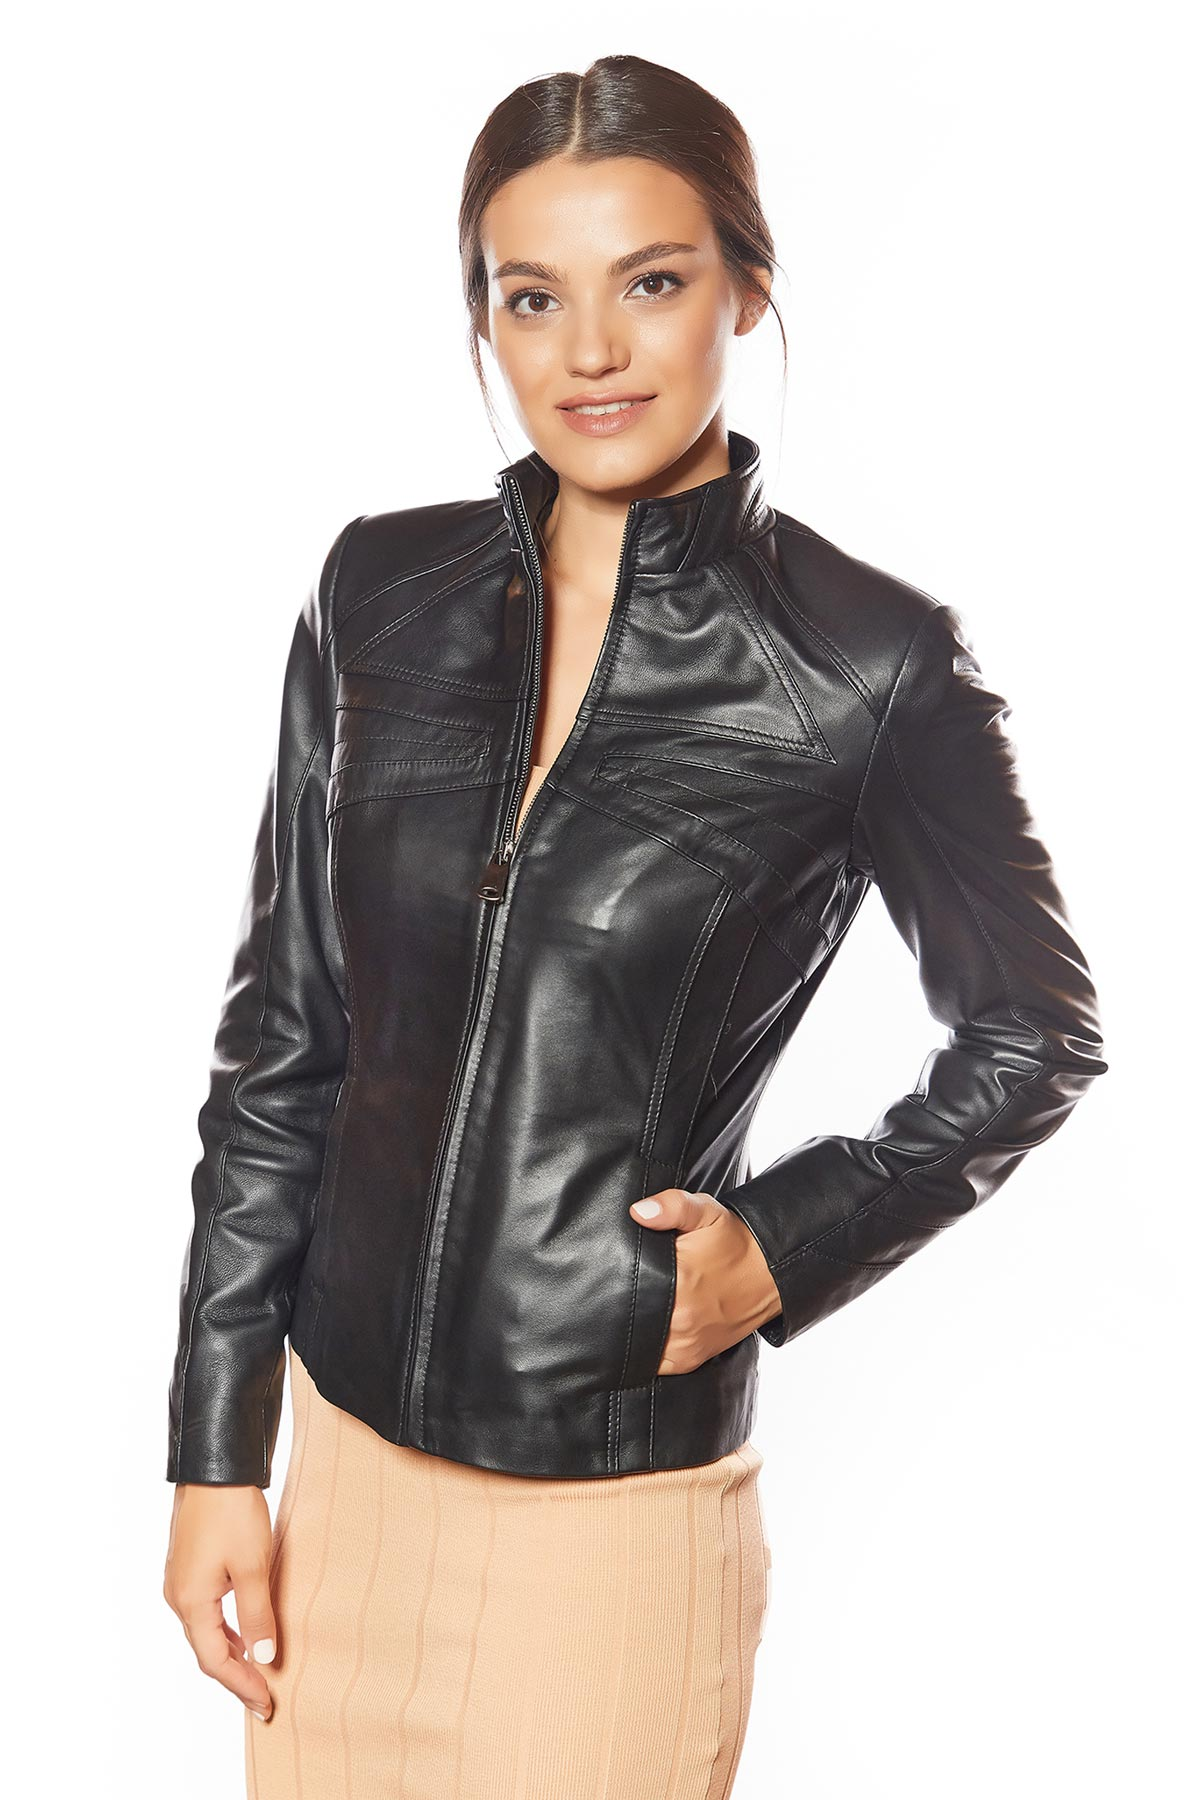 a real leather jacket cost